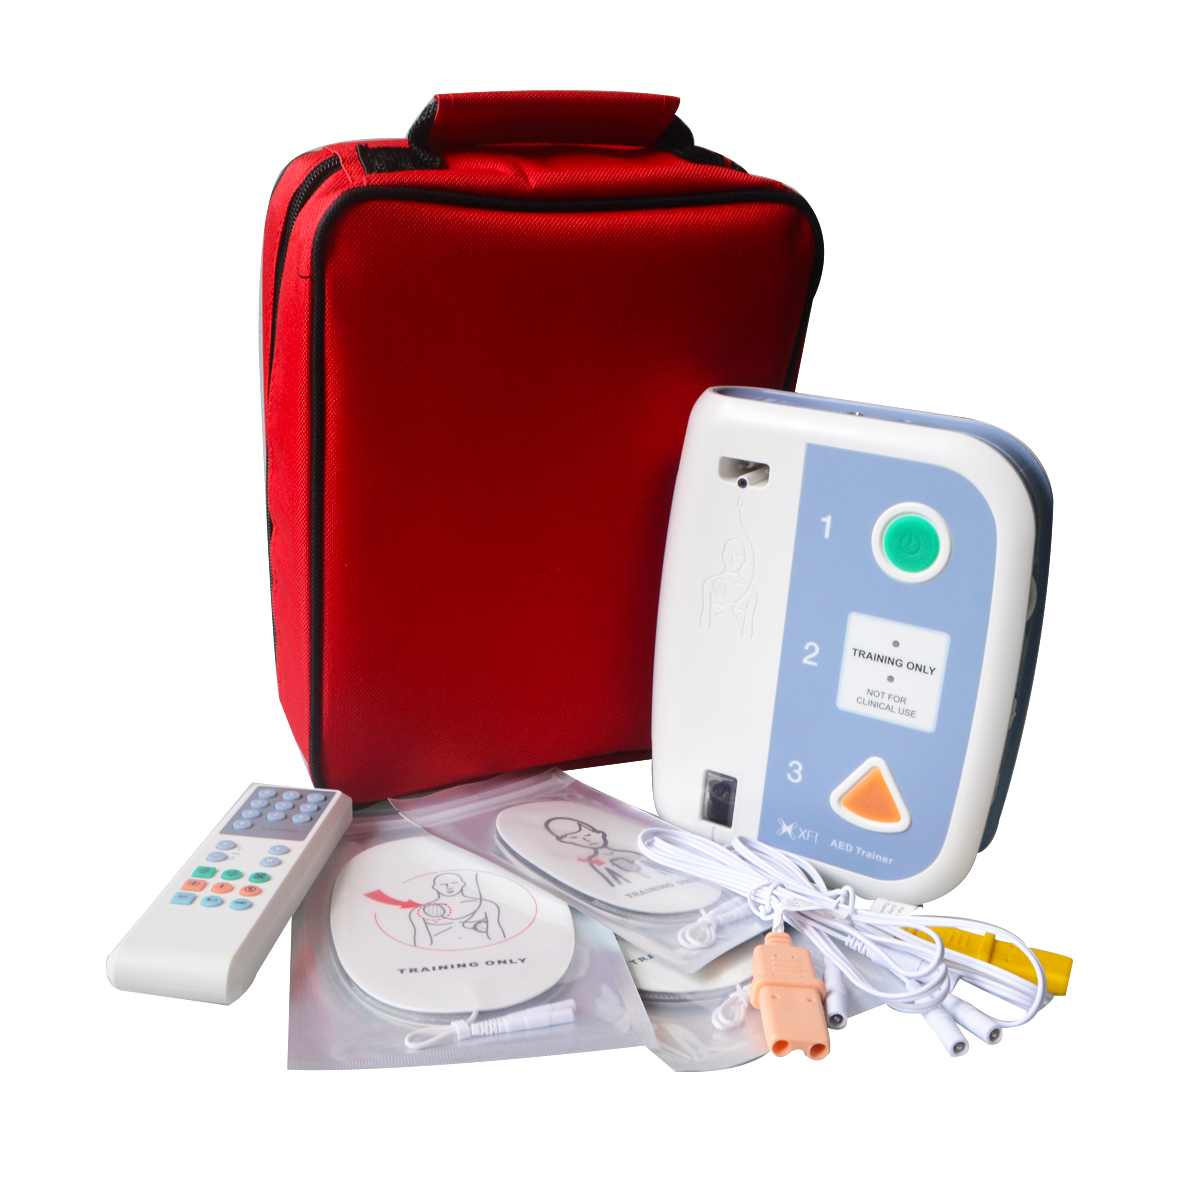 US $160 0 |XFT 120C+ First Aid Device AED Trainer Automated External  Defibrillator Emergency CPR Training Teaching Several Language Choose-in  Slimming